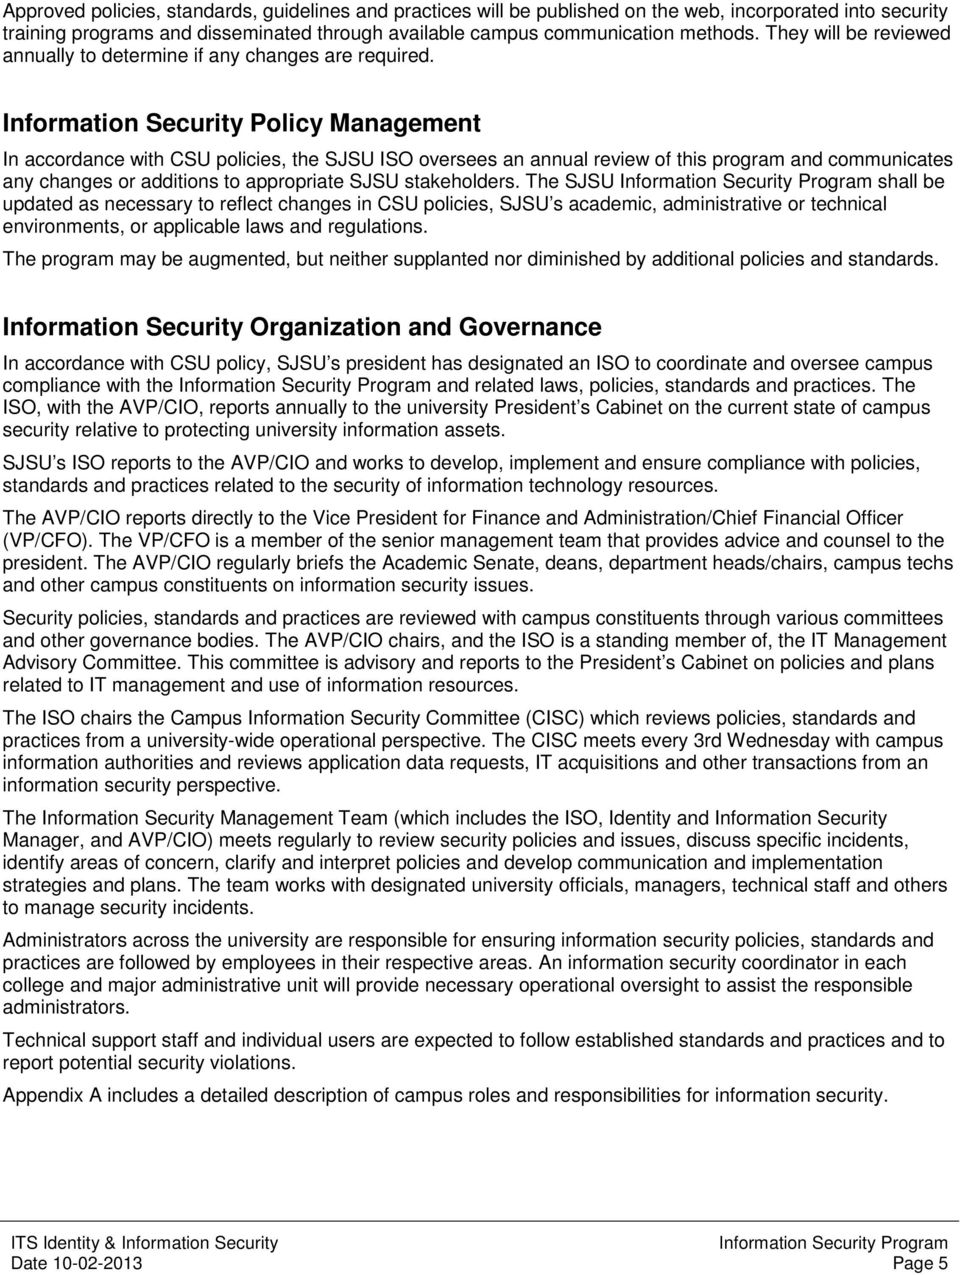 Information Security Policy Management In accordance with CSU policies, the SJSU ISO oversees an annual review of this program and communicates any changes or additions to appropriate SJSU